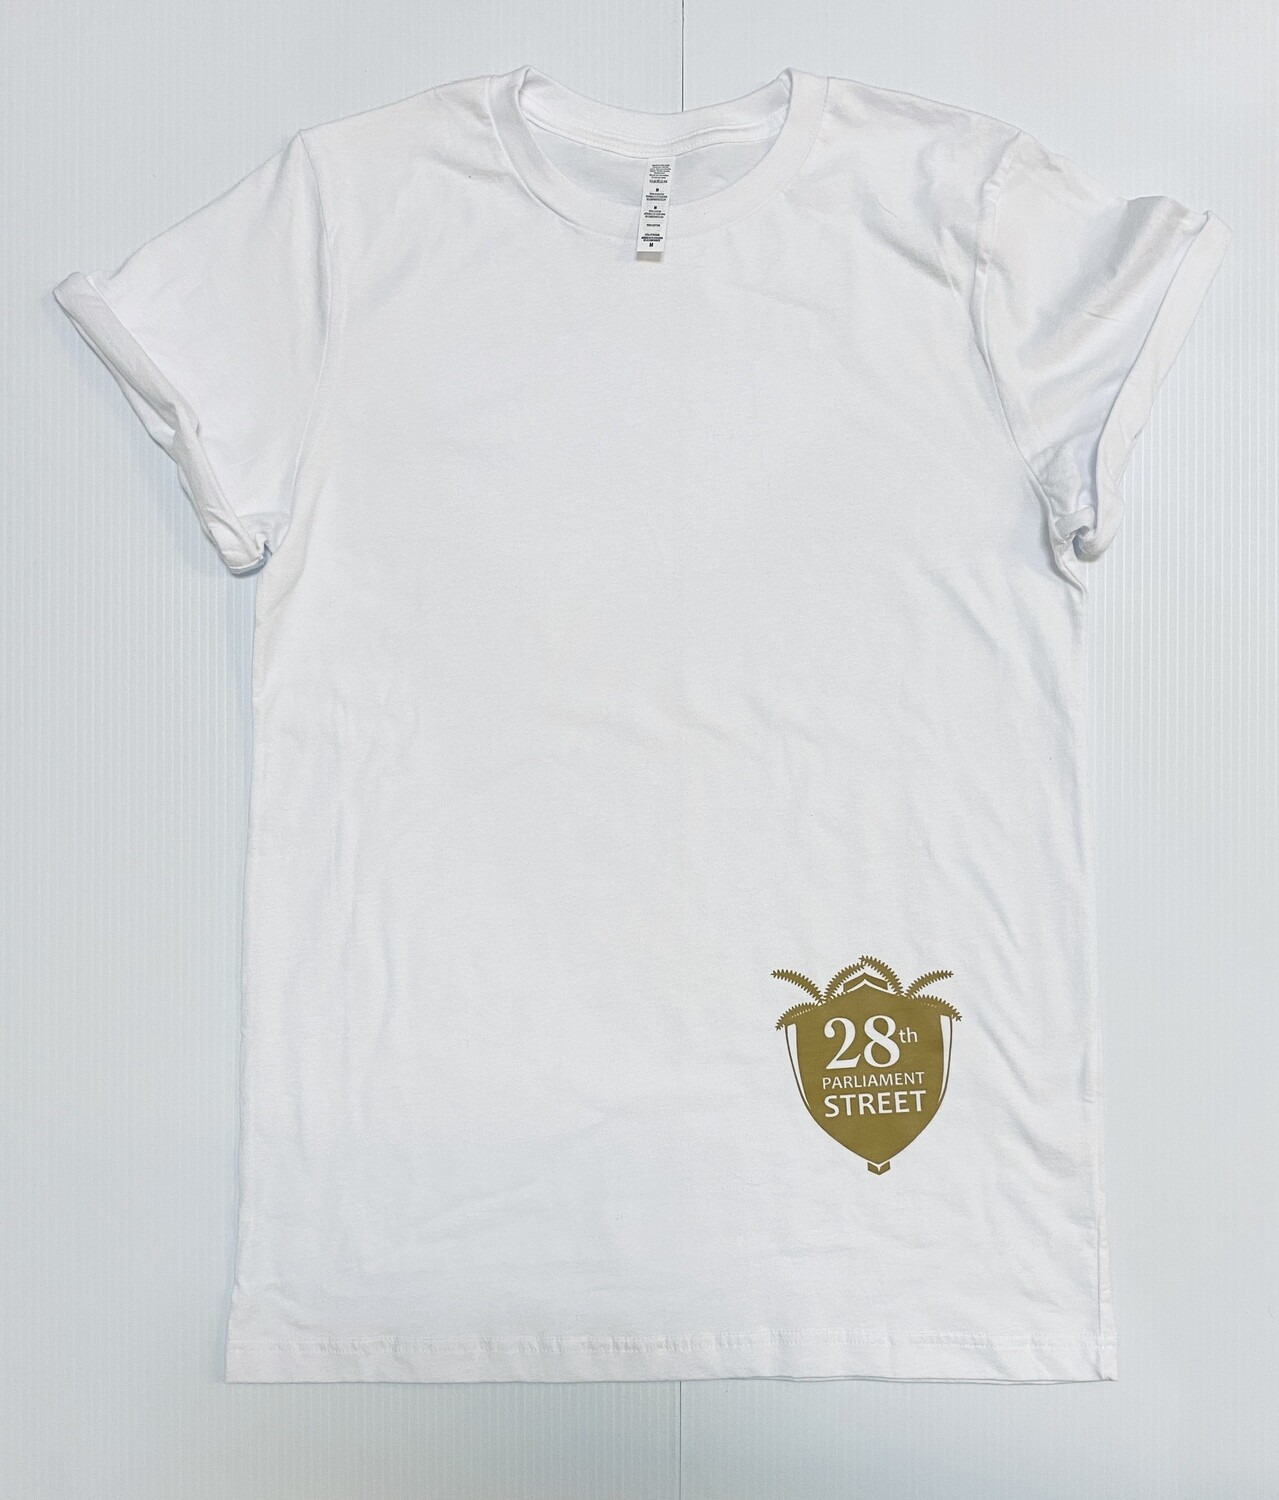 28TH PARLIAMENT ST MEN'S LOGO TEE